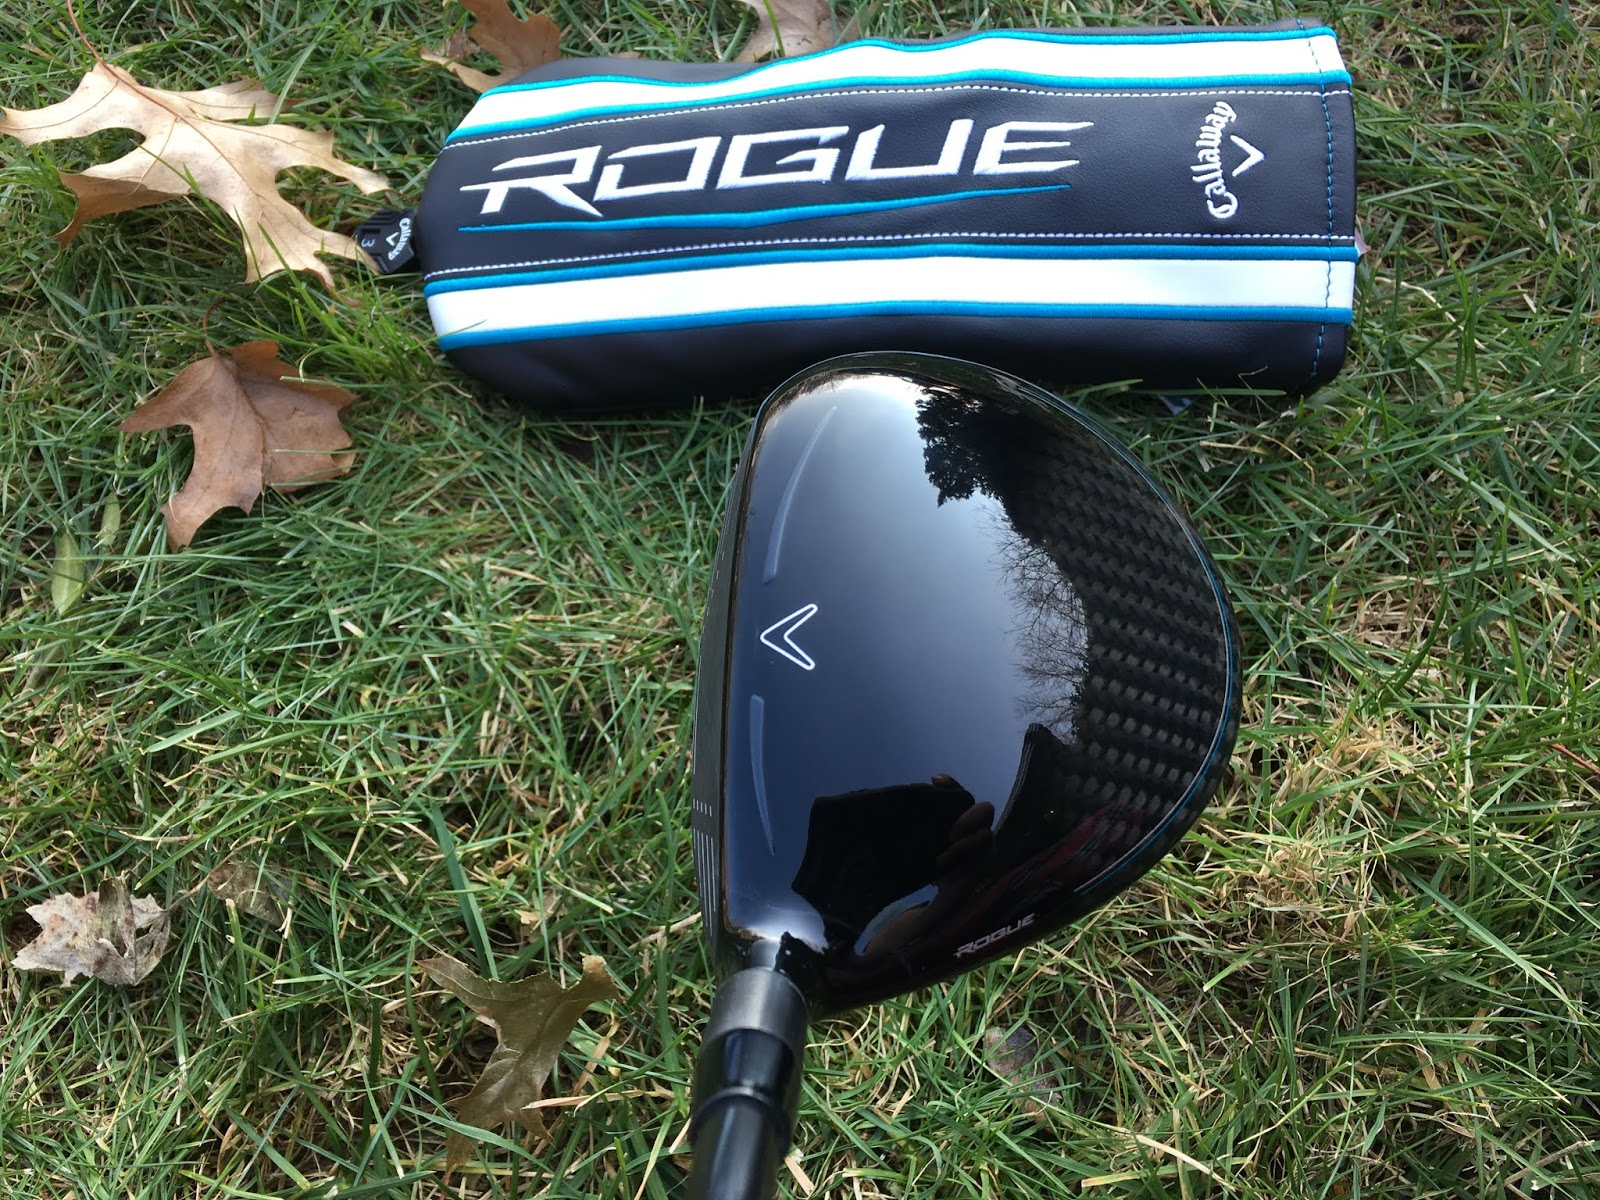 The #1 Writer in Golf: Callaway Golf Rogue Fairway Wood